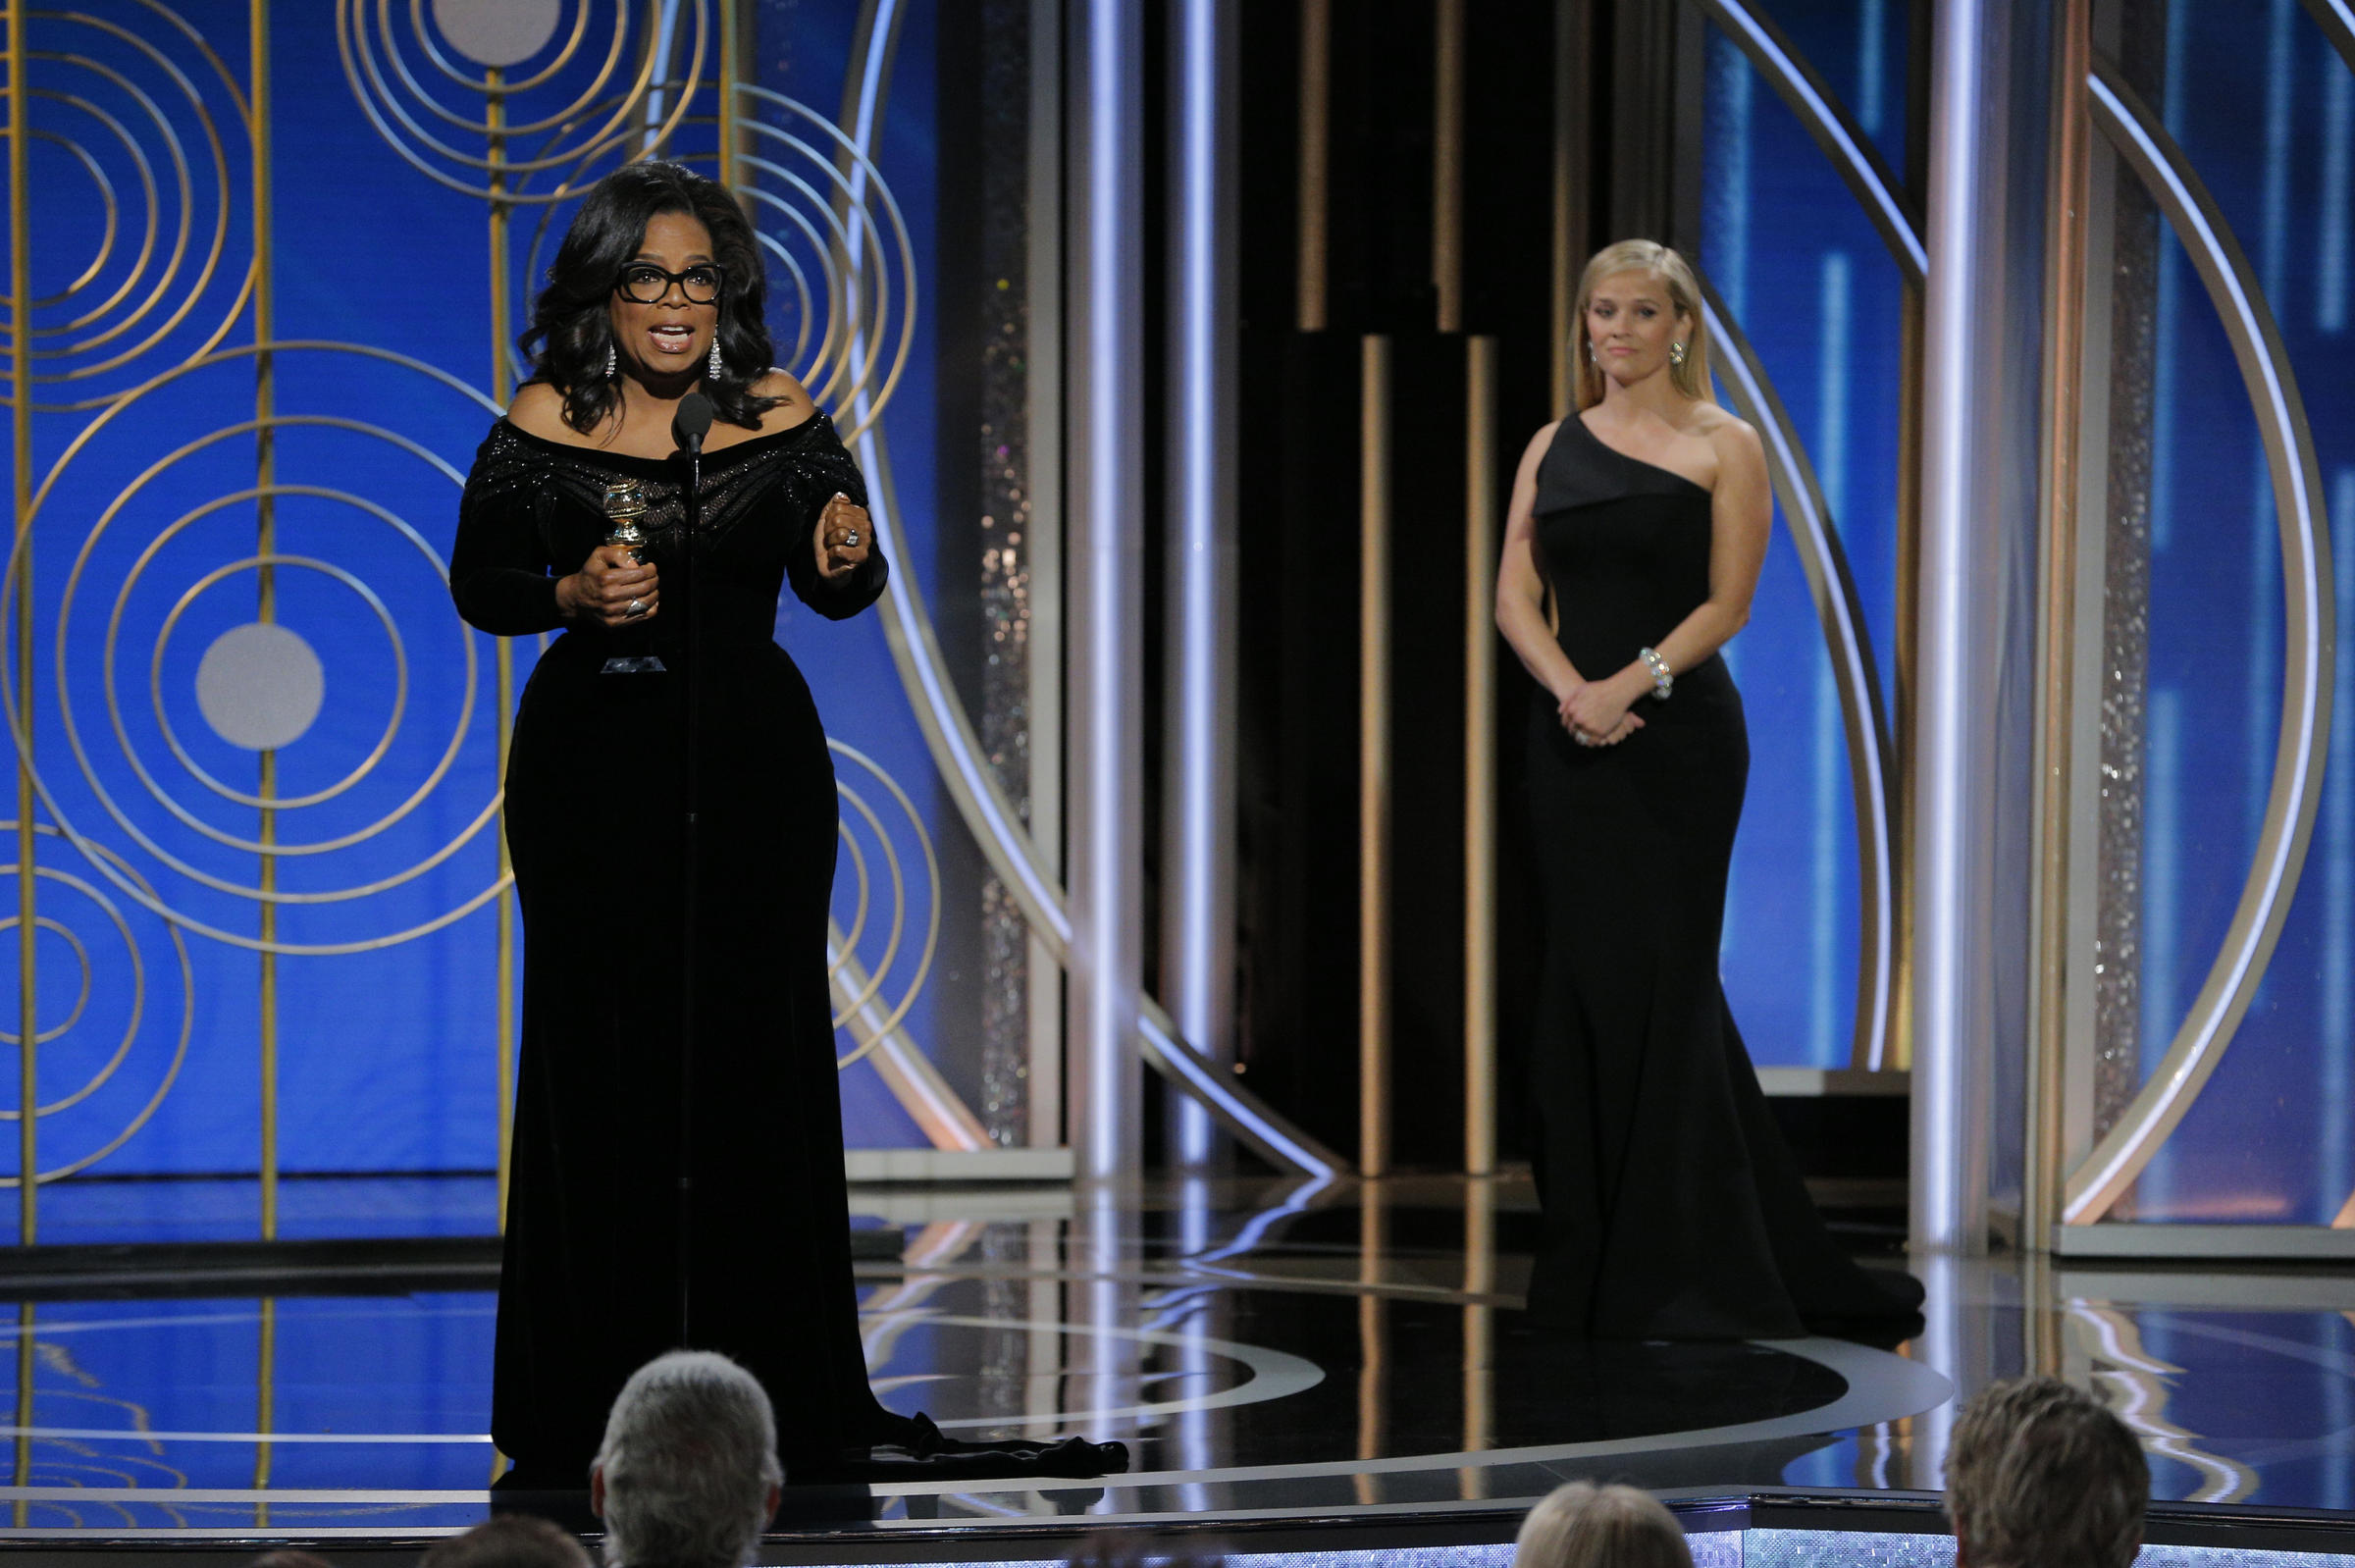 After Oprah's Golden Globes Speech, NBC Tweeted Support for 'OUR' Future President